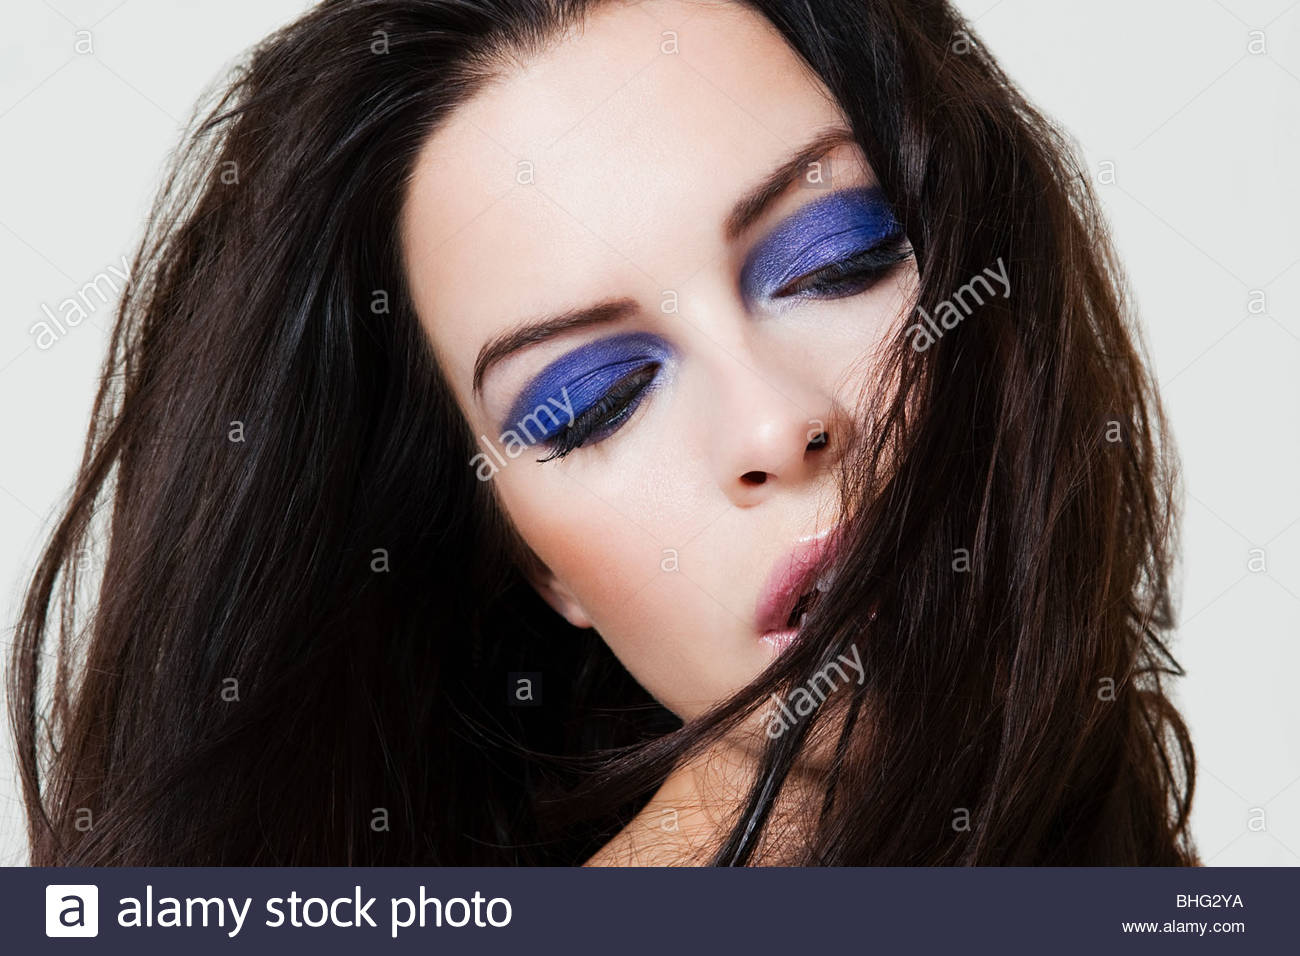 Young woman with purple eyeshadow - Stock Image